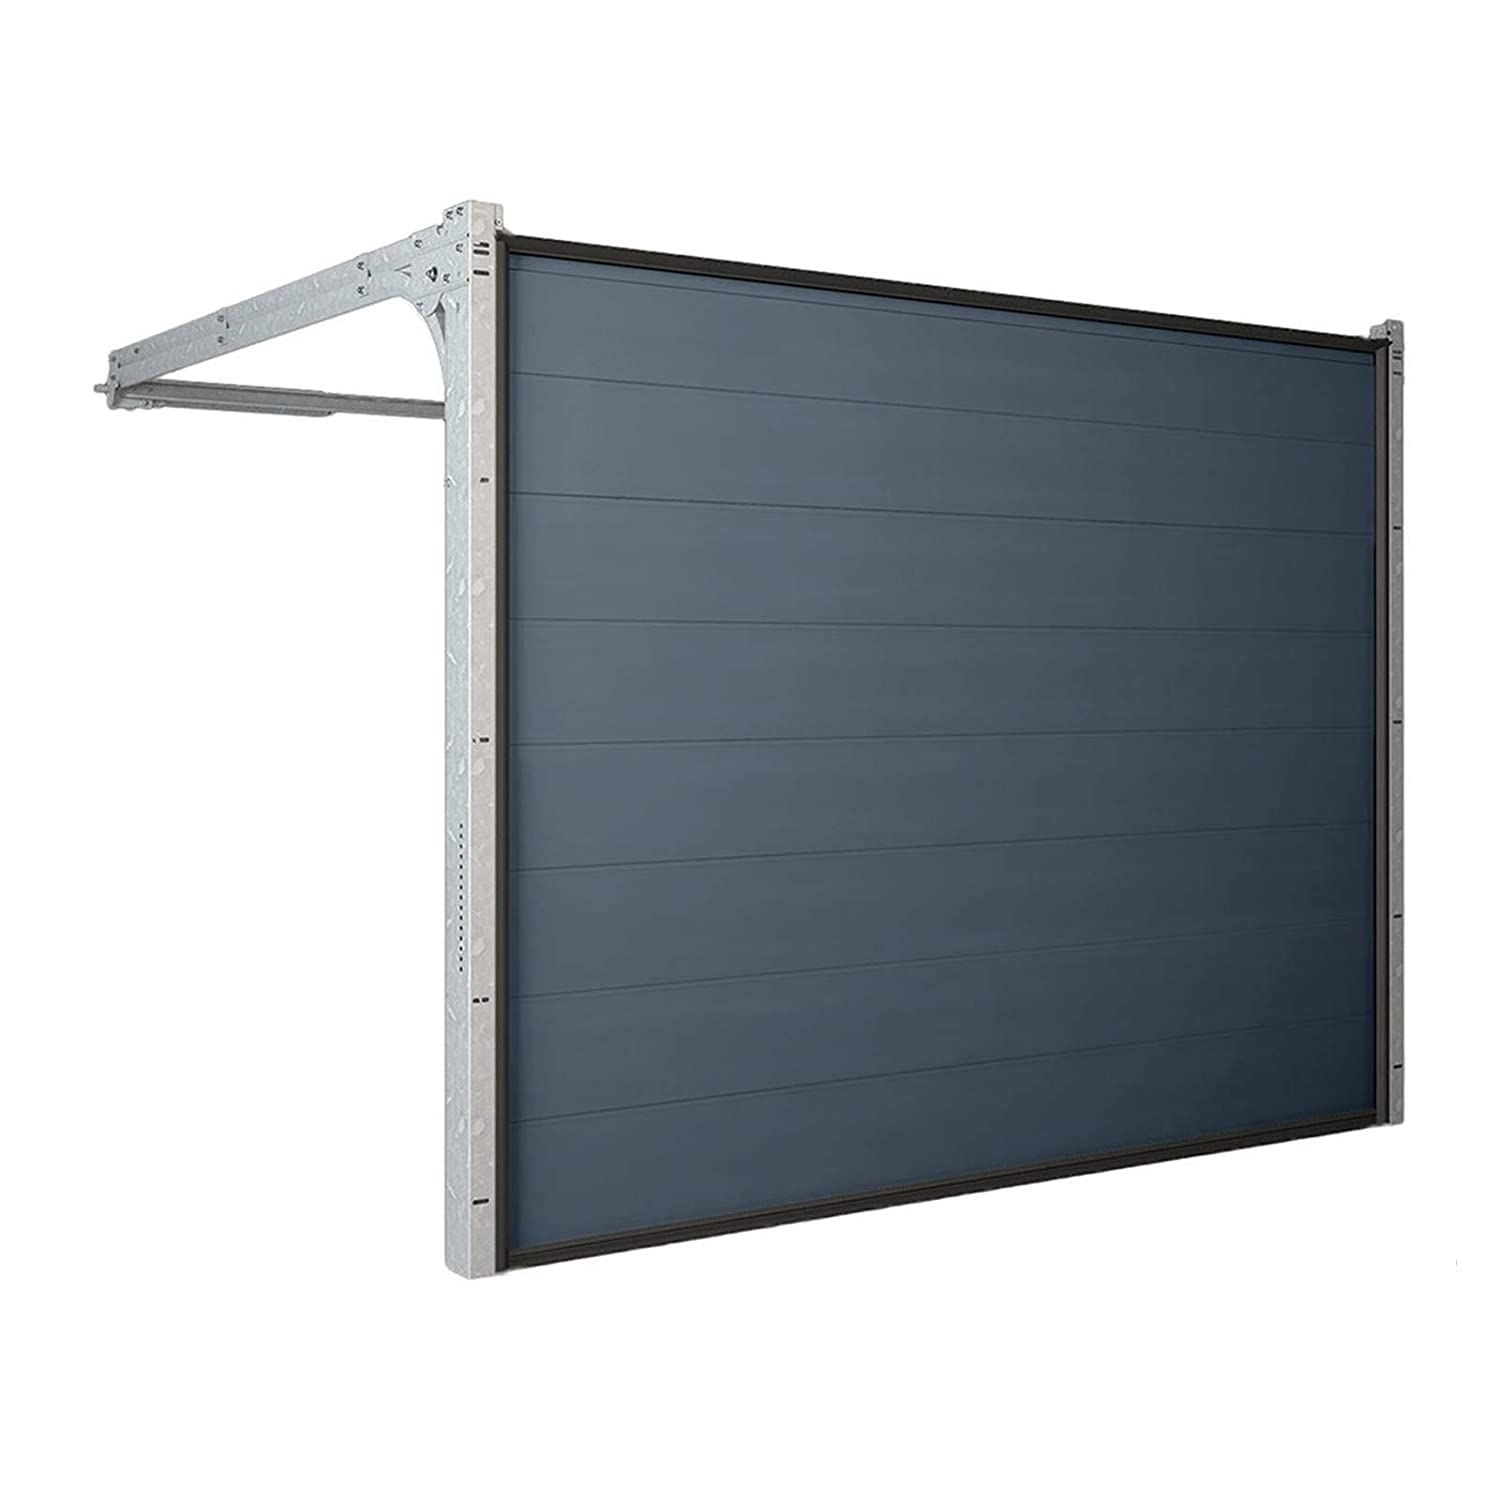 HORI garage door with drive and remote control